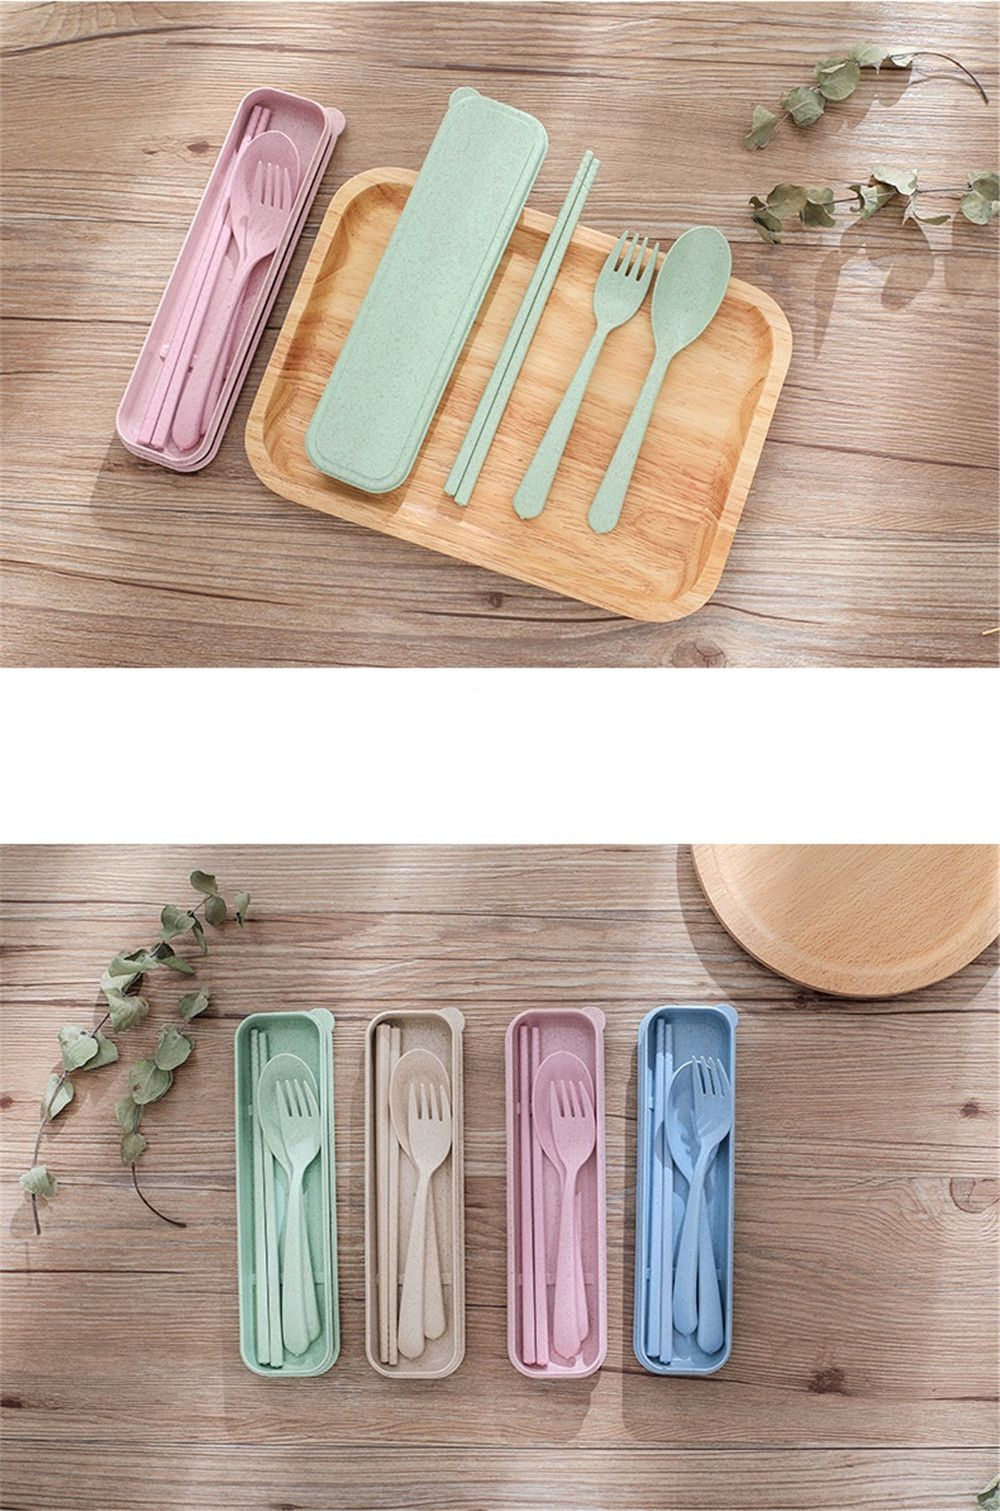 Dinnerware Set Handmade Dinner Fork Cutlery for Kids Kitchen Picnic Tableware